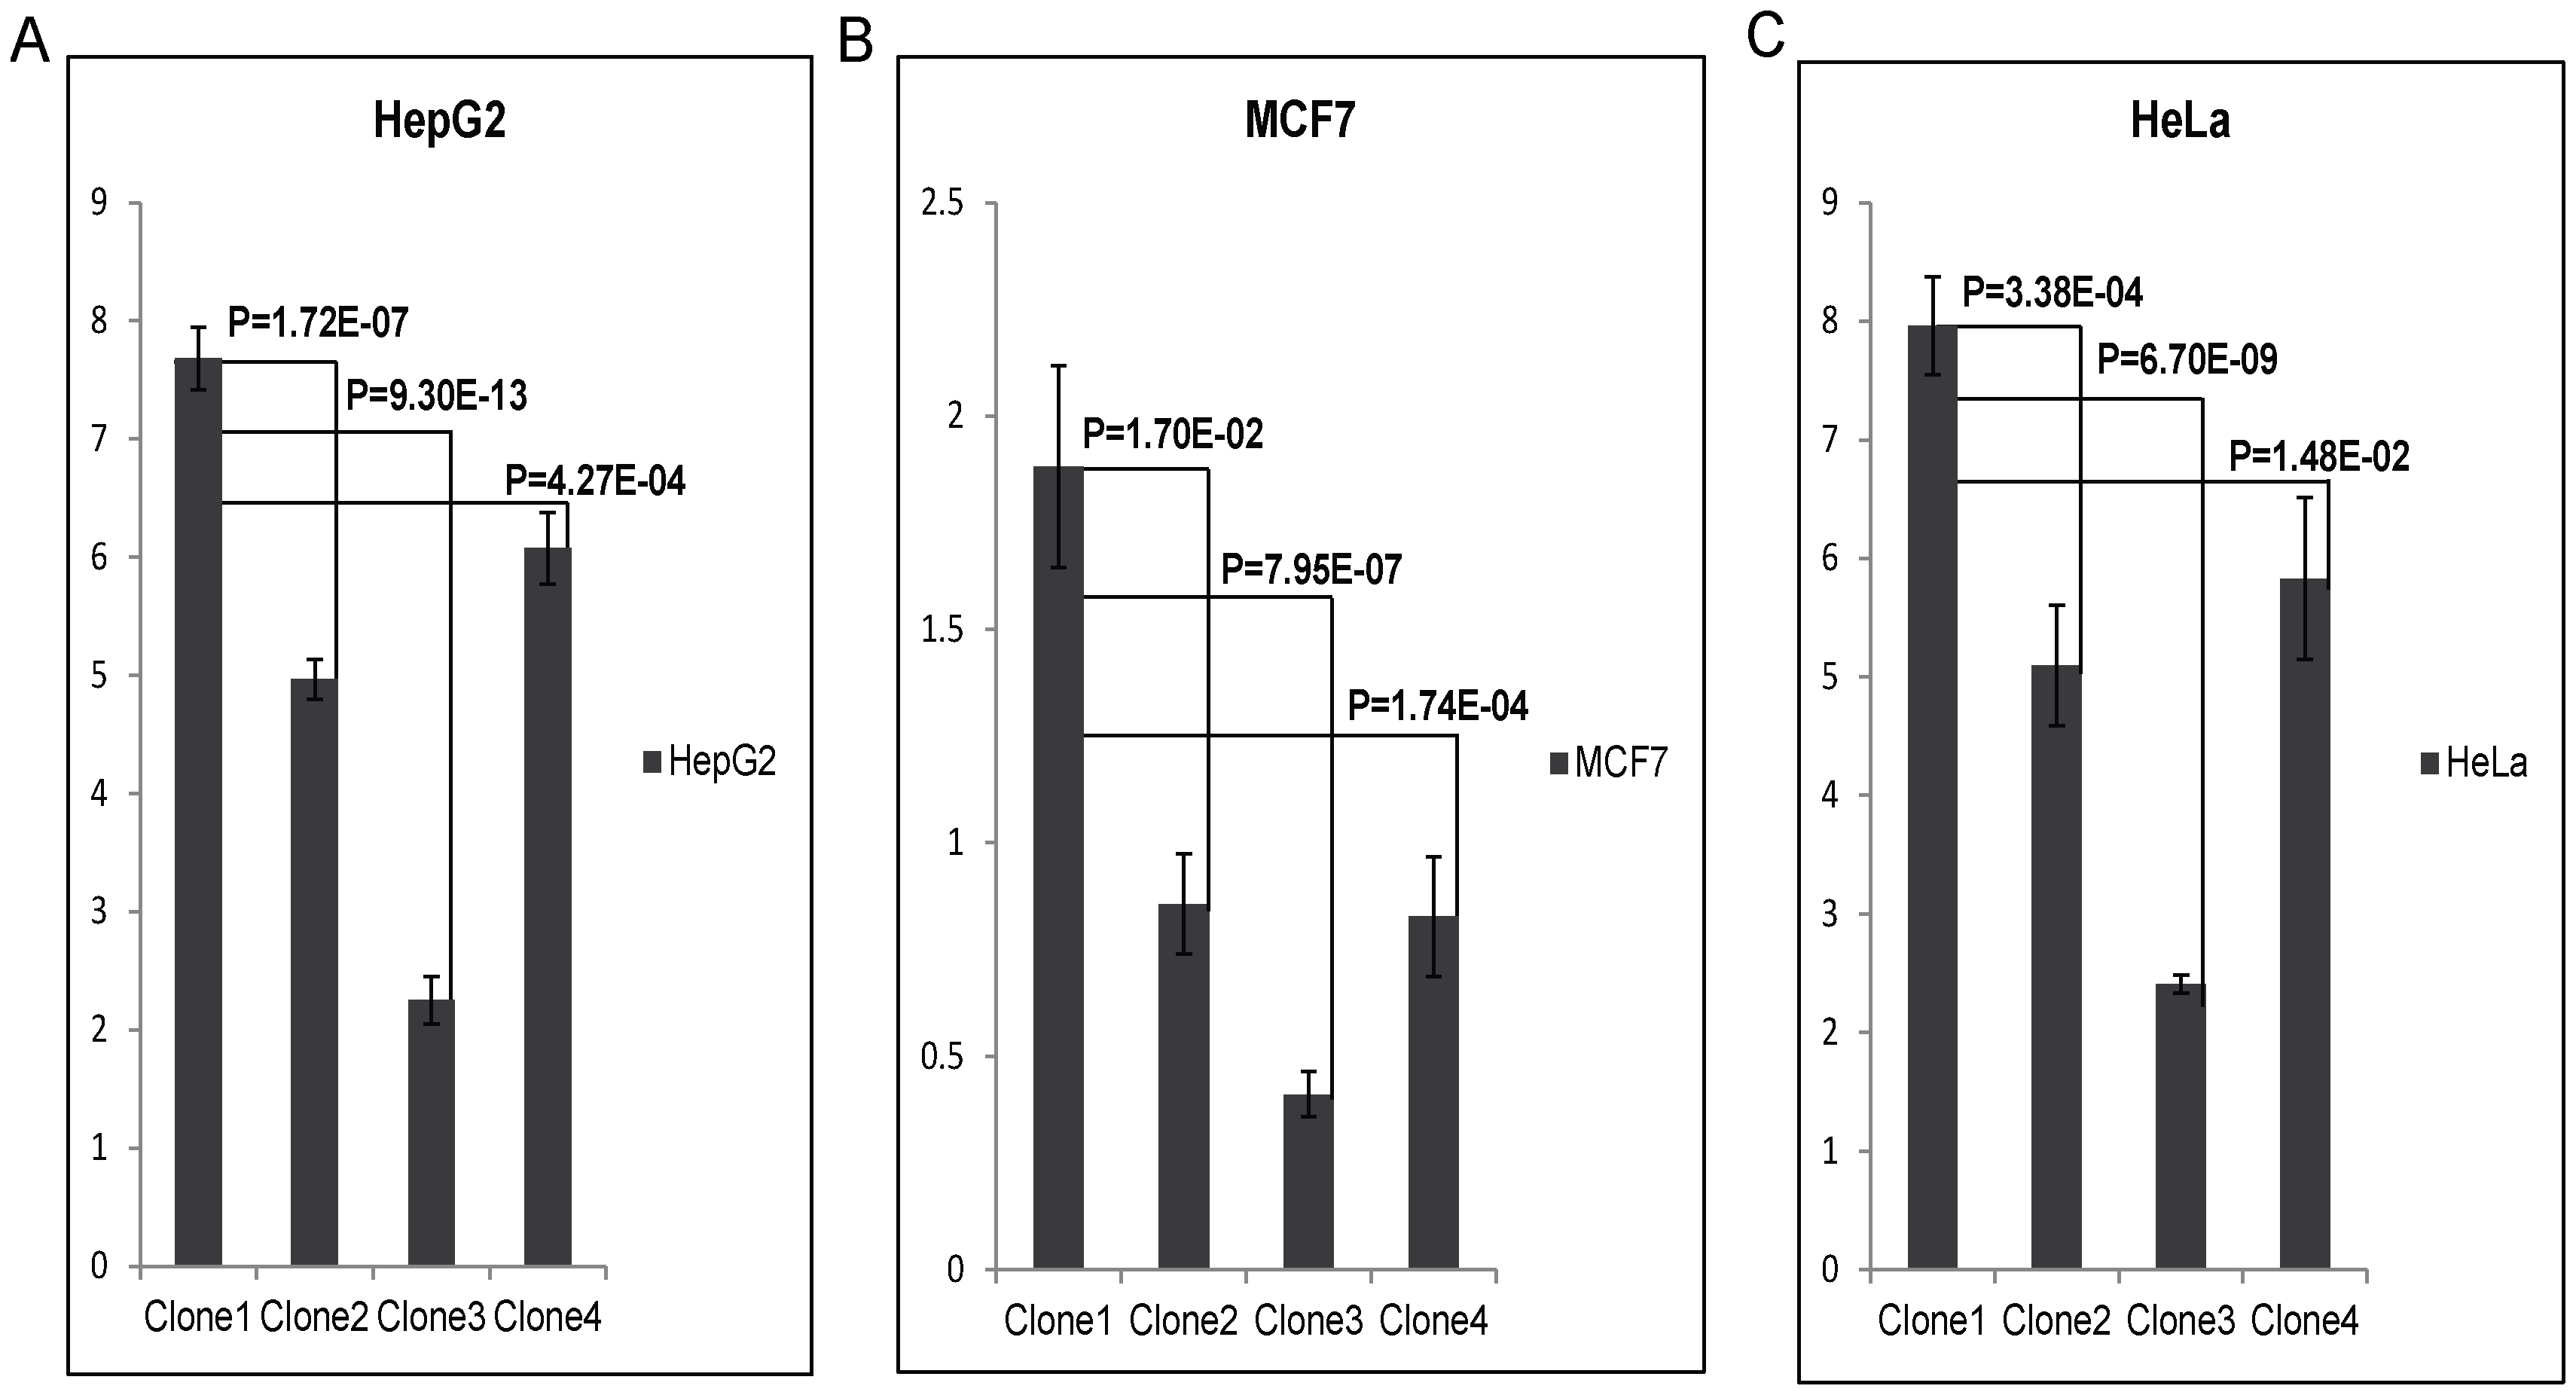 Luciferase expression assay of upstream SNPs of PARK2 gene (rs9365492 (T/C) and rs9355403 (G/A)): C & A respectively represent risk allele for the SNP.